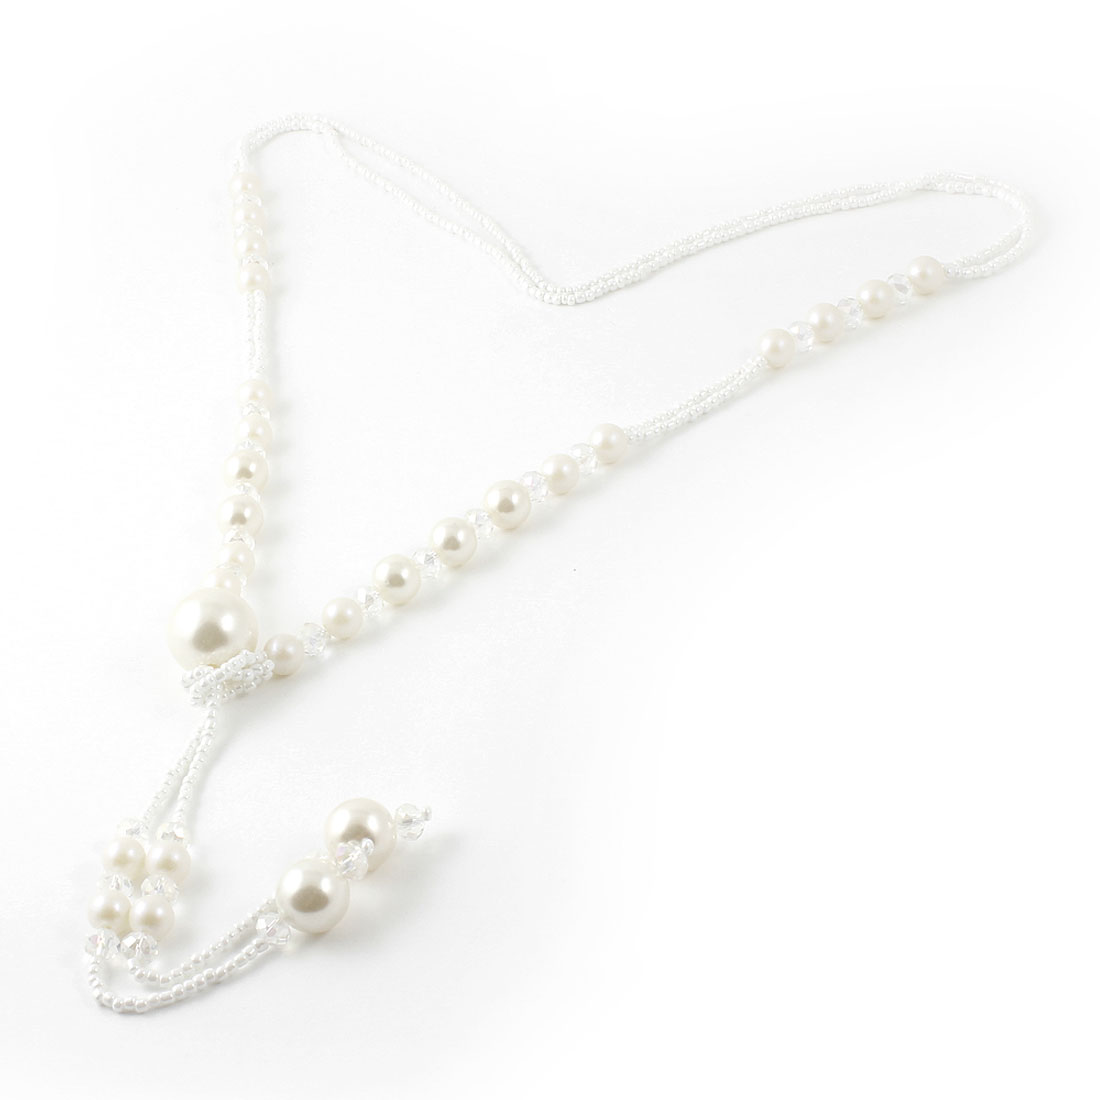 Lady Plastic Crystal Accent Beads Pendant Sweater Necklace Clear White